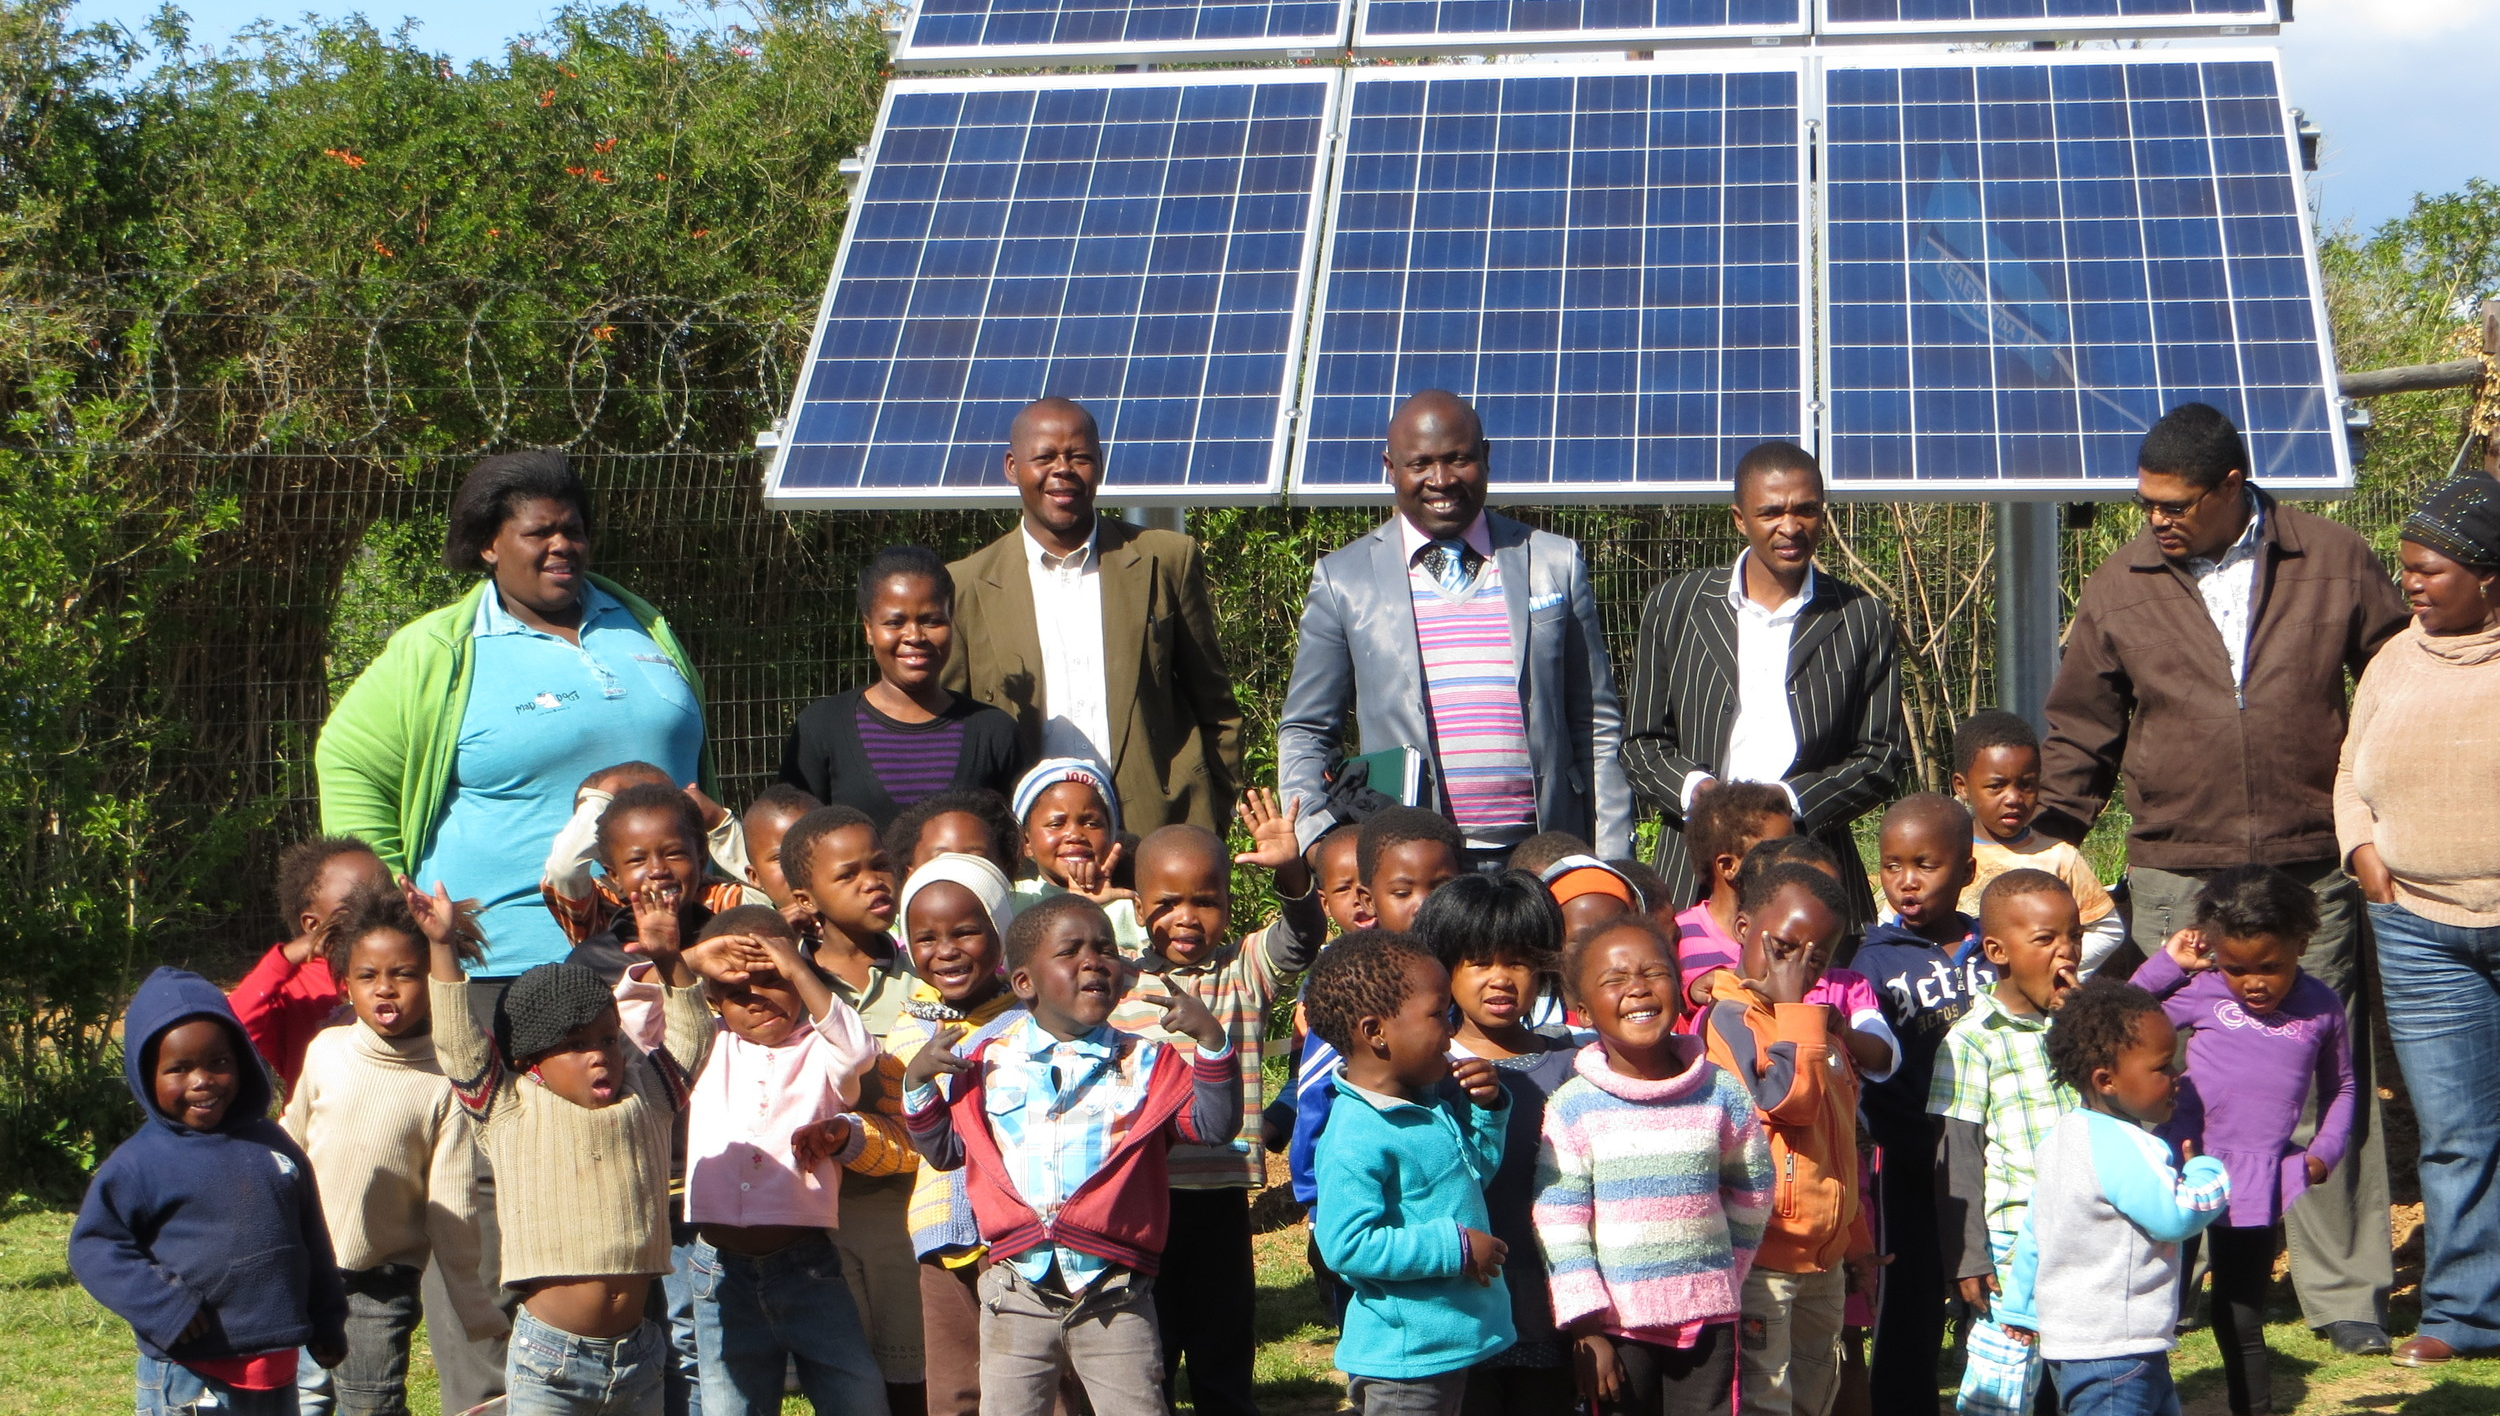 Celebrating the installation of the wind turbine and solar panels that power the community center and nursery school!